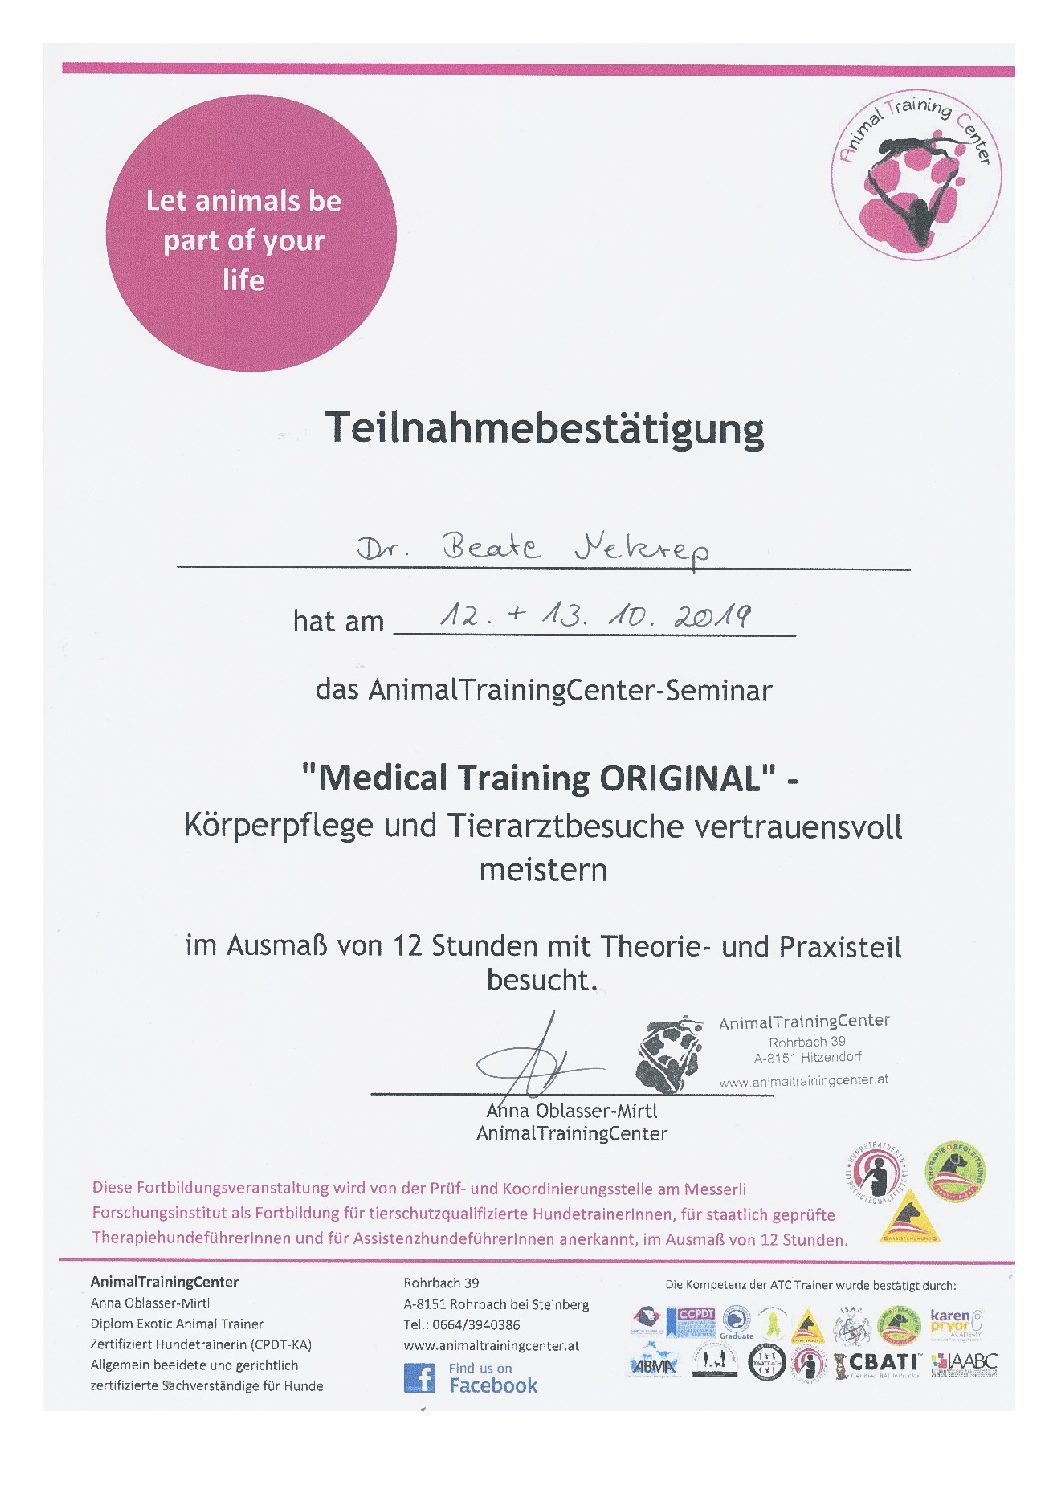 Medical Training, Körperpflege & Tierarztbesuche, A. Oblasser-Mirtl, Animal Trainings Center 10 2019